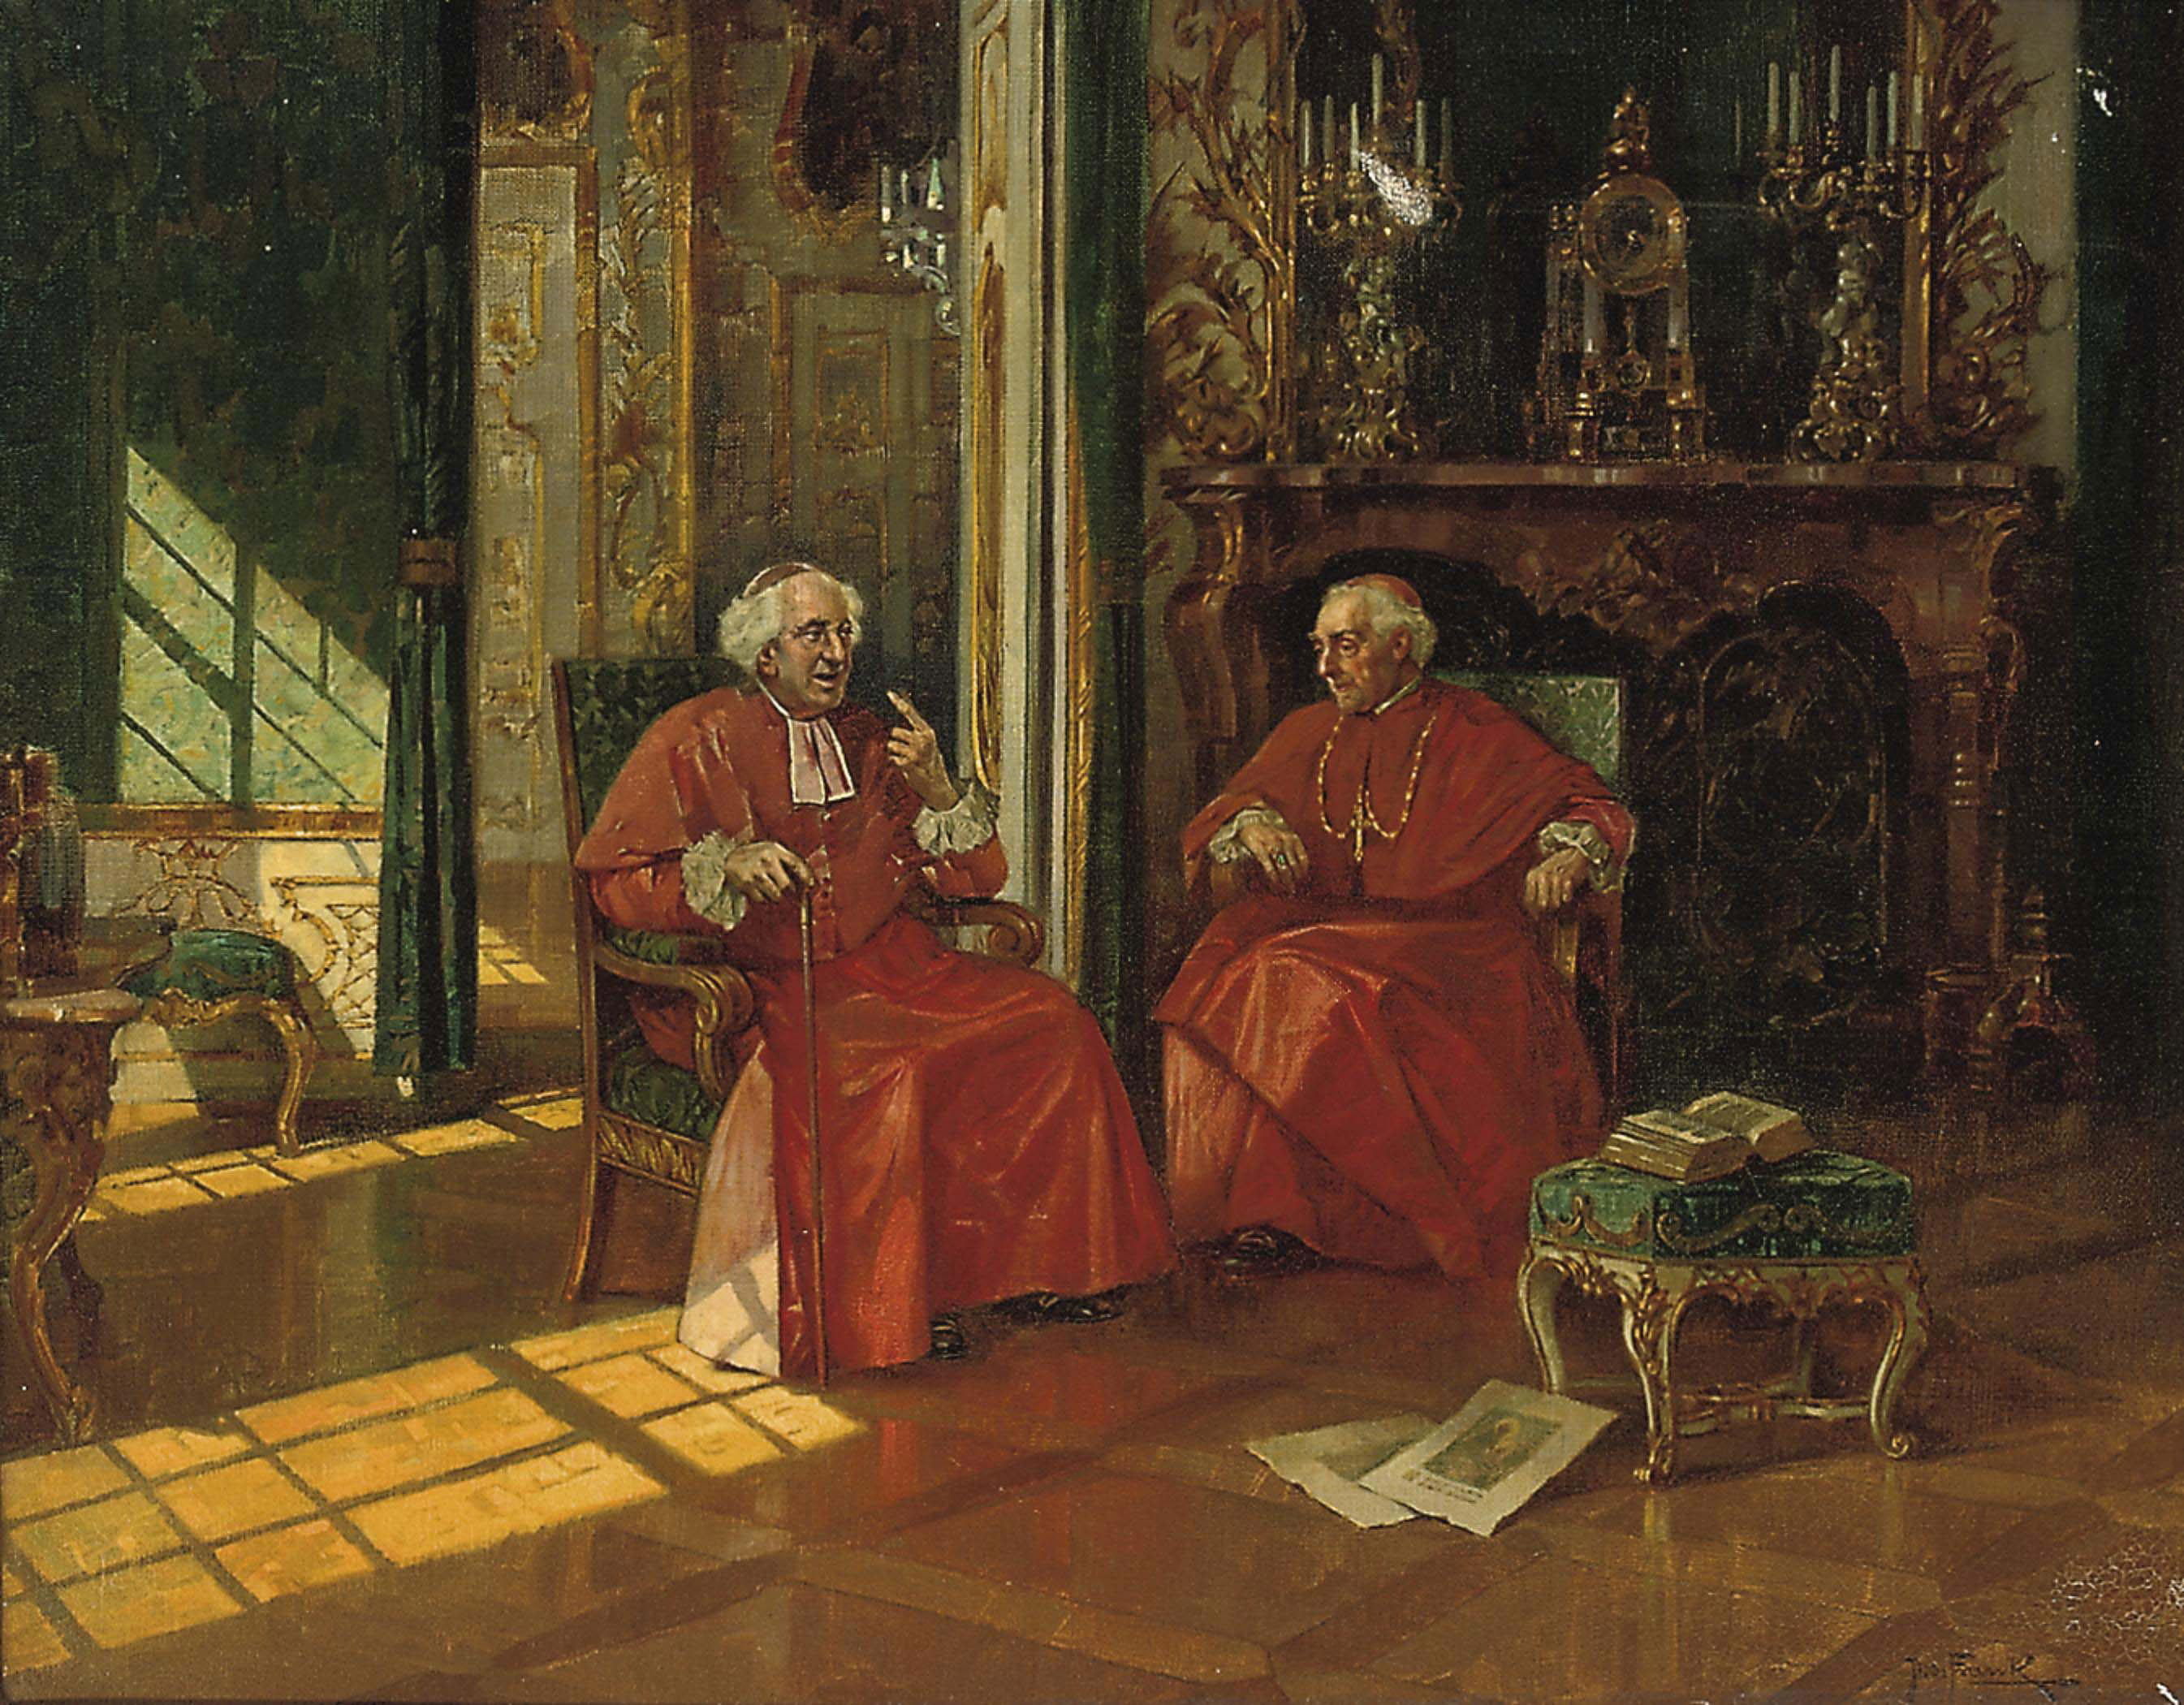 Two cardinals in a sunlit interior